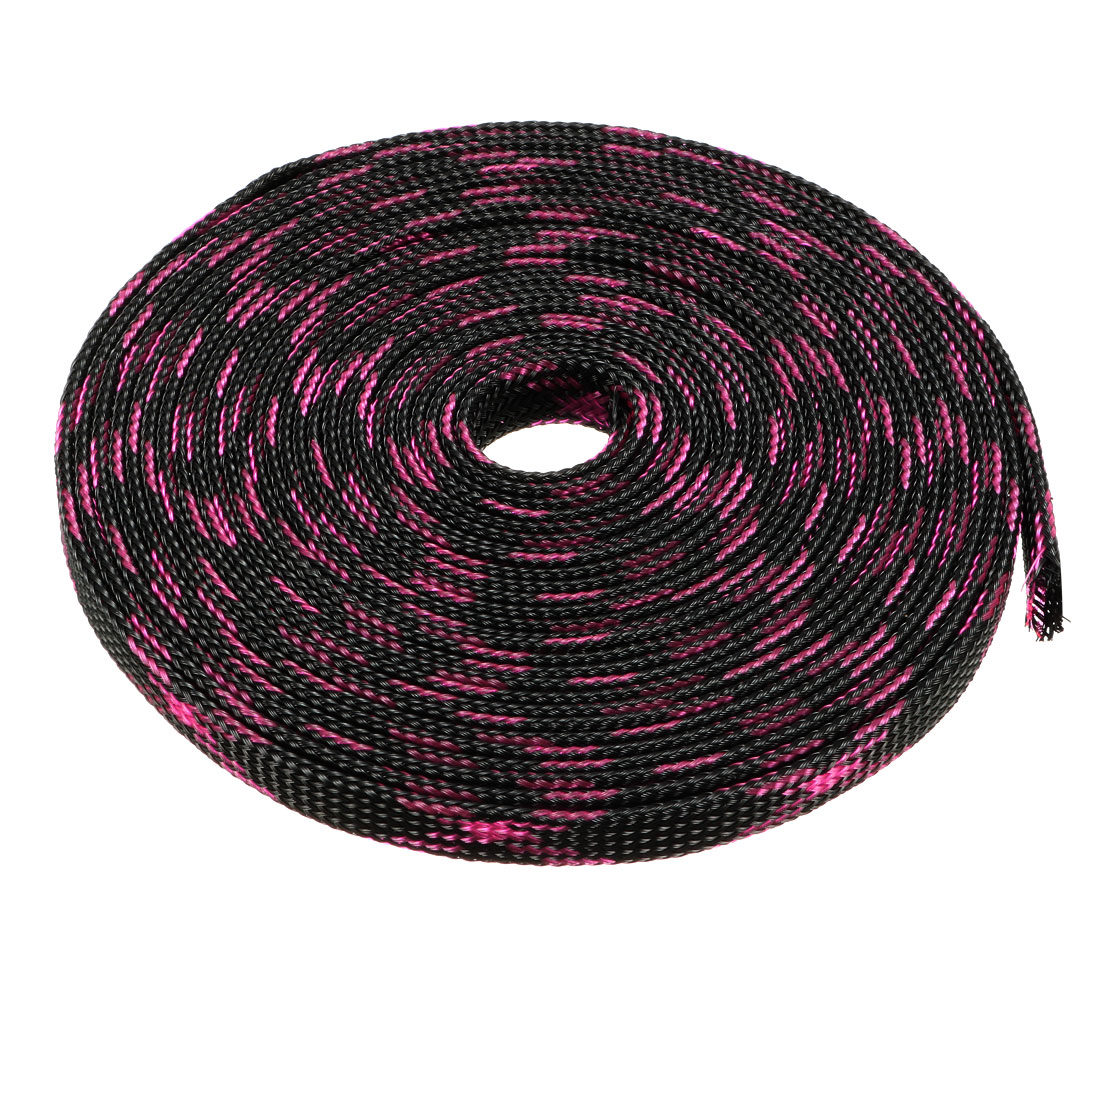 PET Braided Sleeving 32.8 Feet 10m Expandable Cable Wrap 6mm Diameter Wire Sheath Black,Pink